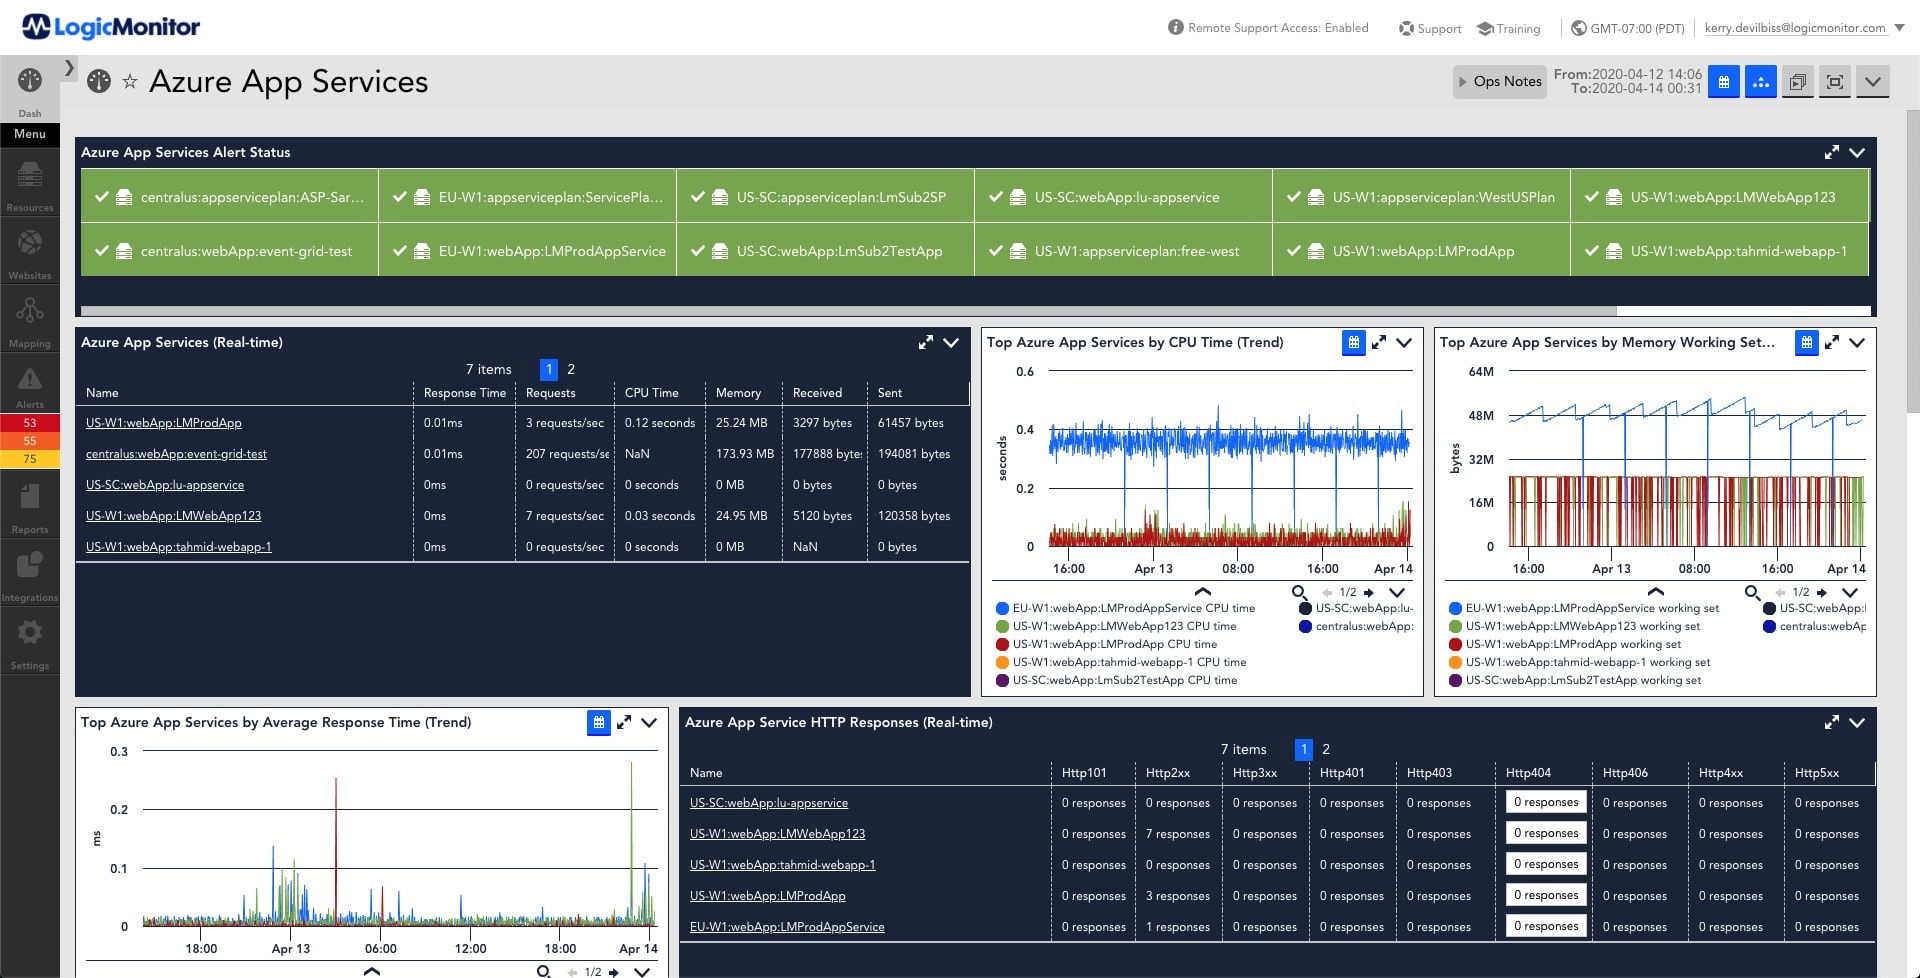 LogicMonitor Azure appservices dashboard